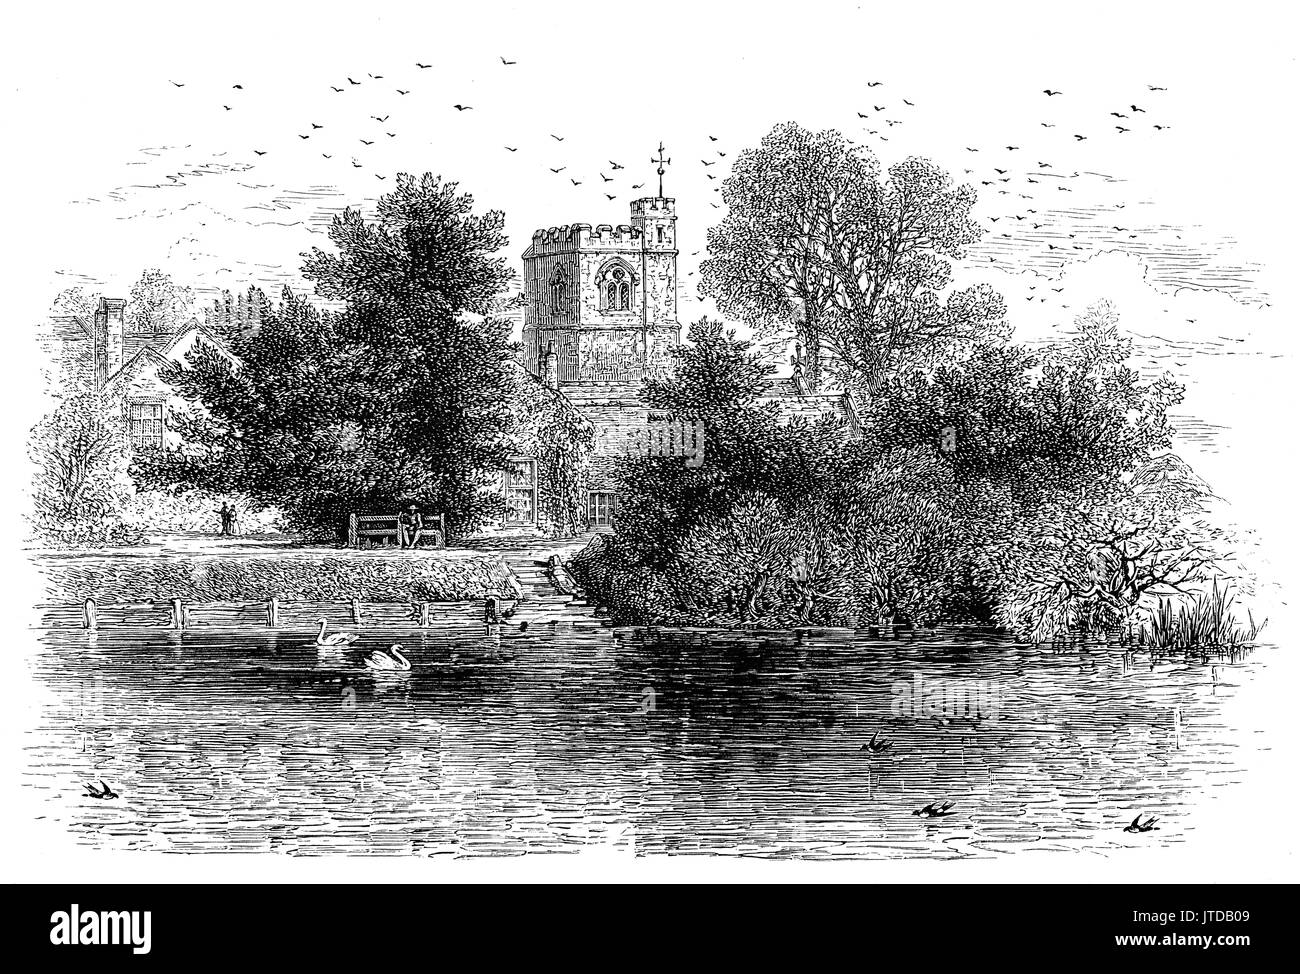 1870:  Viewed from across the River Thames, the ancient and historic church of St Michael's. It dates from 1293 and was partly rebuilt ca. 1500 and extensively restored 1857–82 by Thomas Henry Wyatt. Located in the Parish of Bray, Berkshire, England. It was made famous (or infamous!) in the popular ballad, the parish is widely known, because of the turncoat ways of the Vicar of Bray. - Stock Image